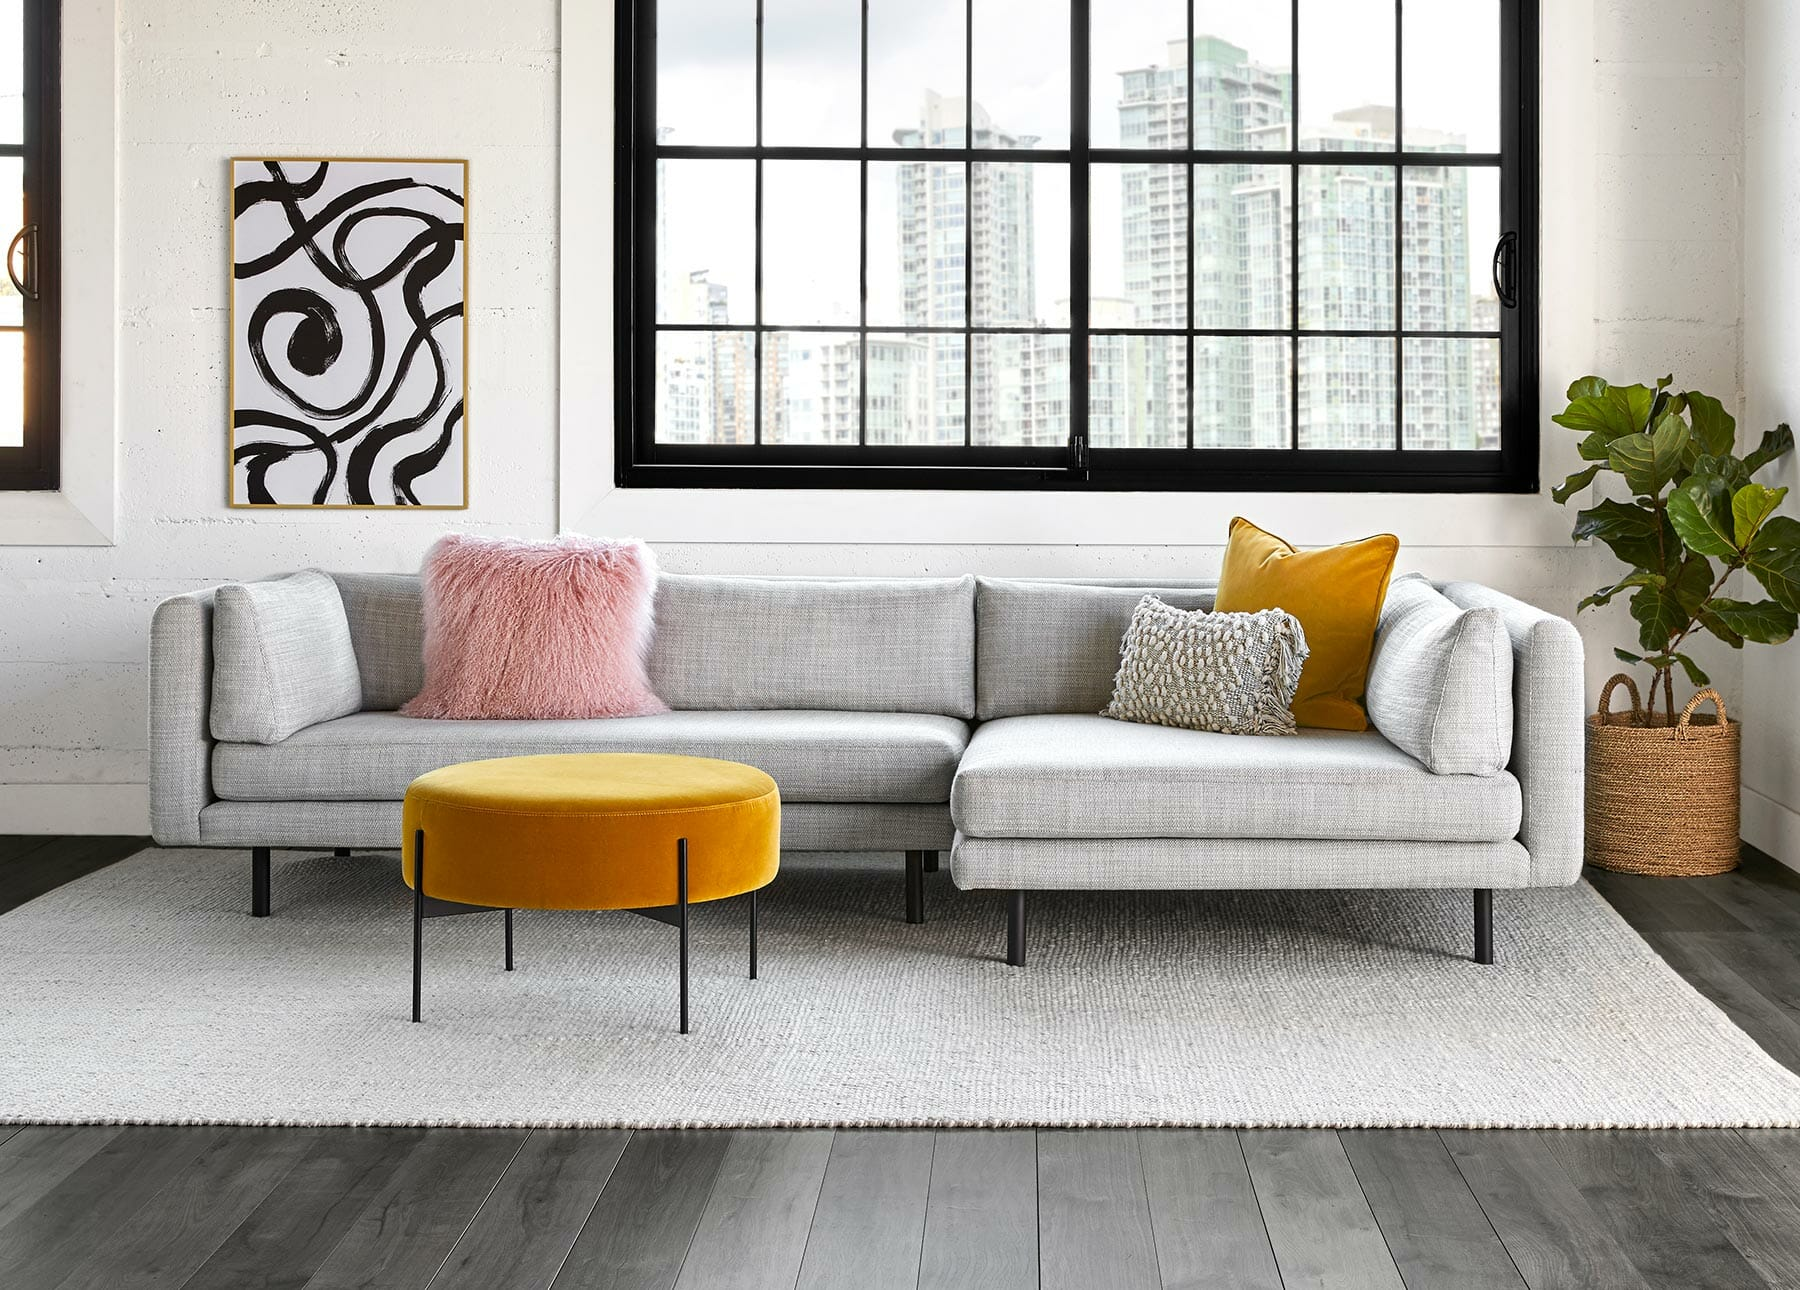 Article's Lappi Sectional in a light gray sits next to a yellow ottoman and black and white print.